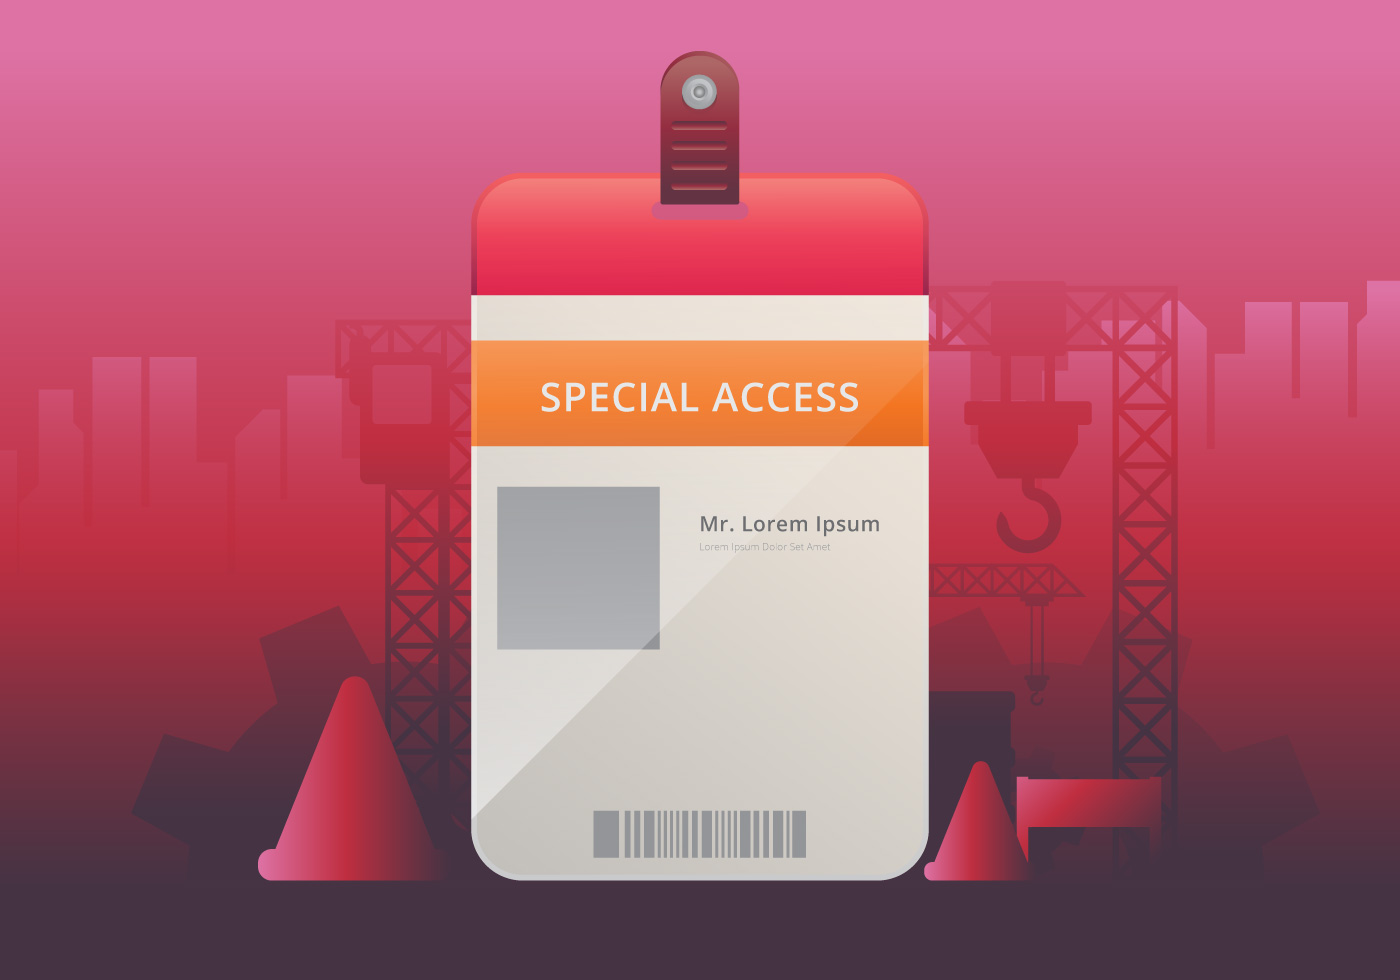 Vip Pass Id Card Template Realistic Blank Vertical Id For Construction Theme Mockup Download Free Vectors Clipart Graphics Vector Art